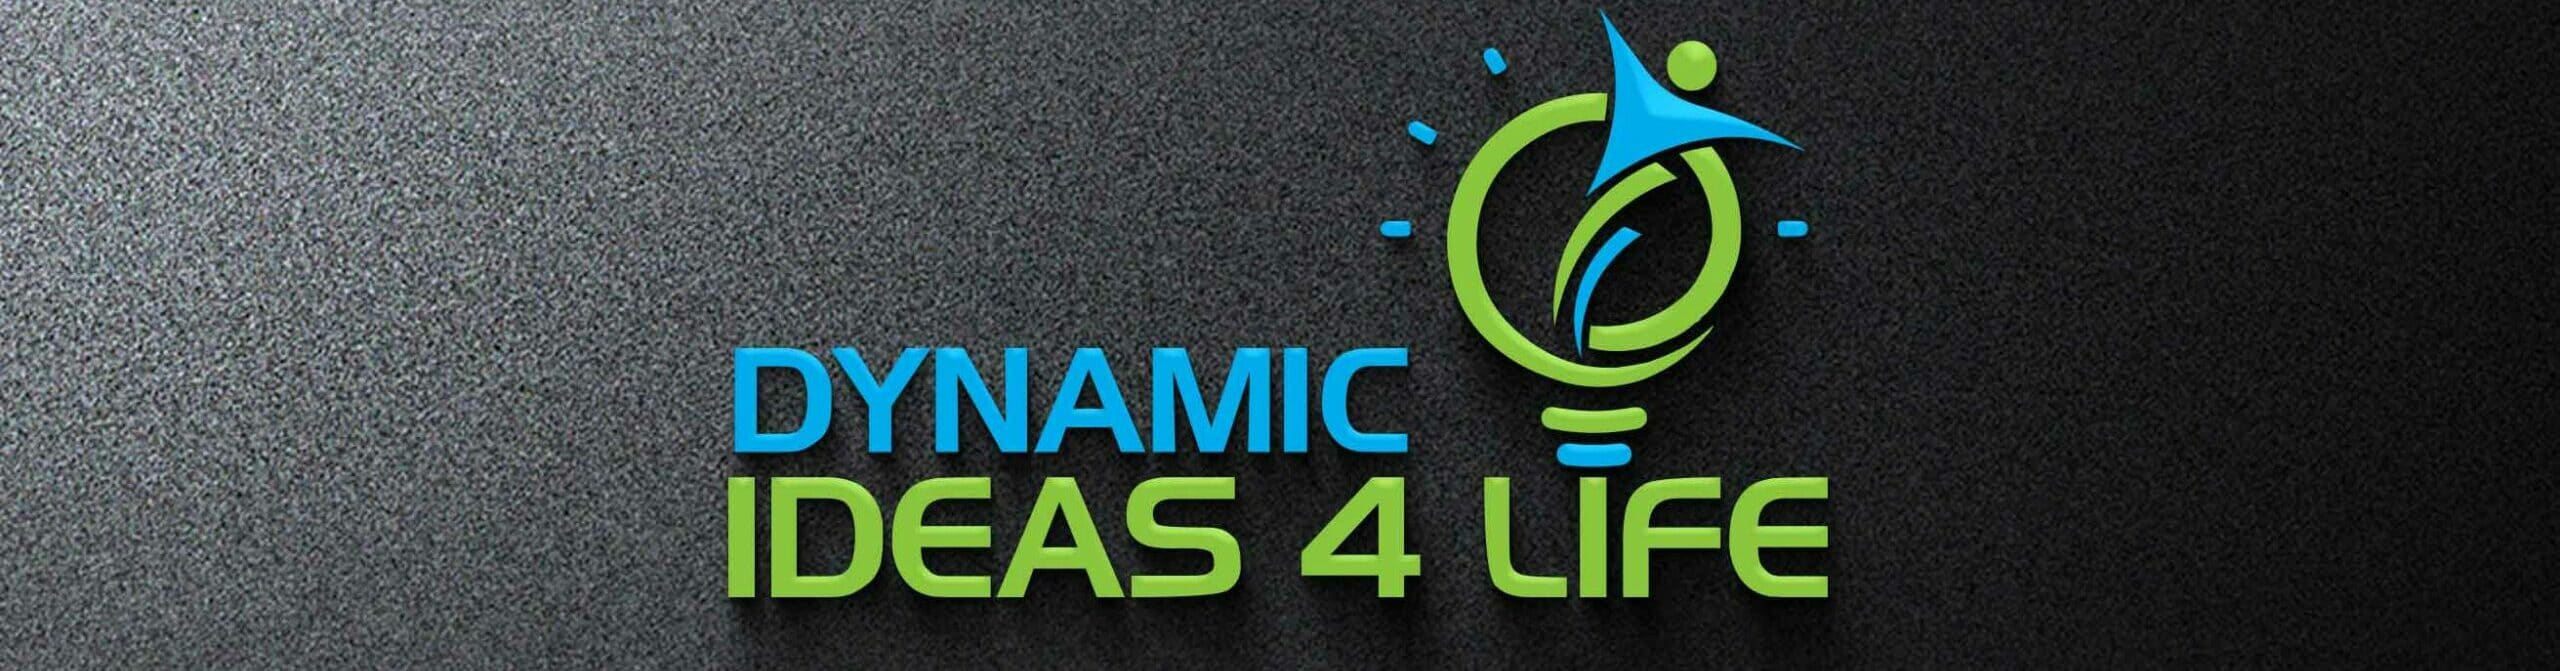 Dynamic Ideas 4 Life